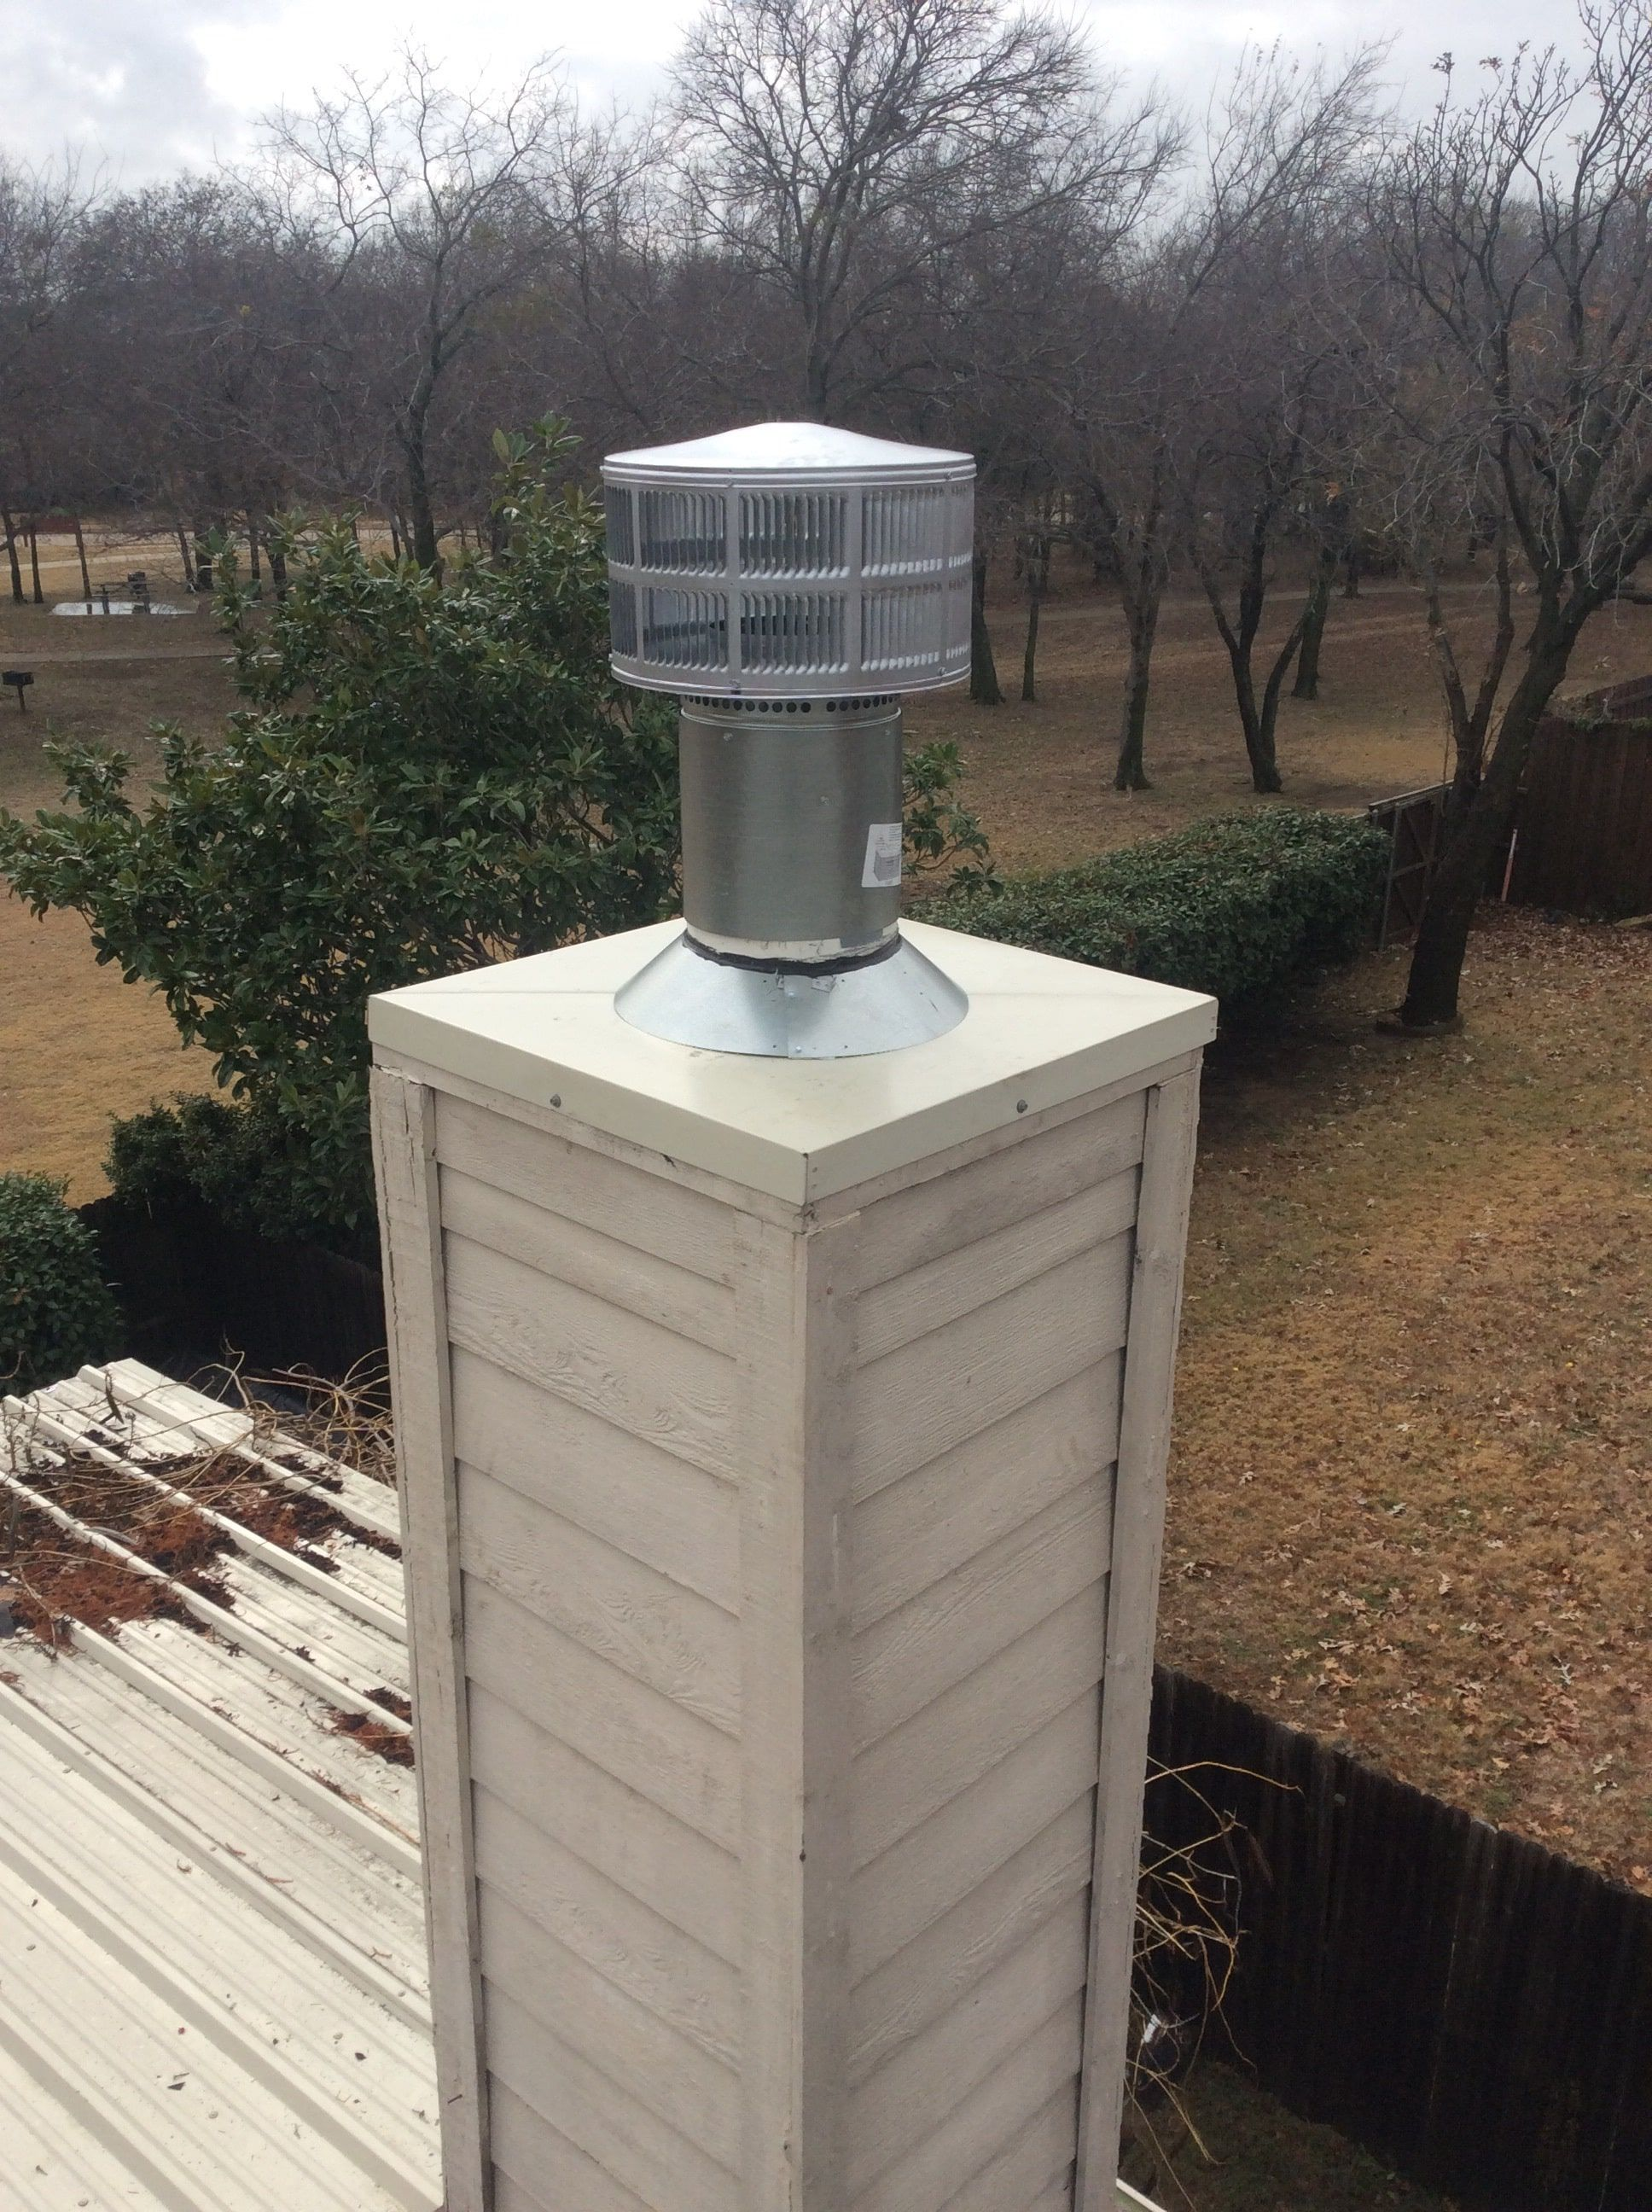 A chase cover is a lid for your chimney that ensures